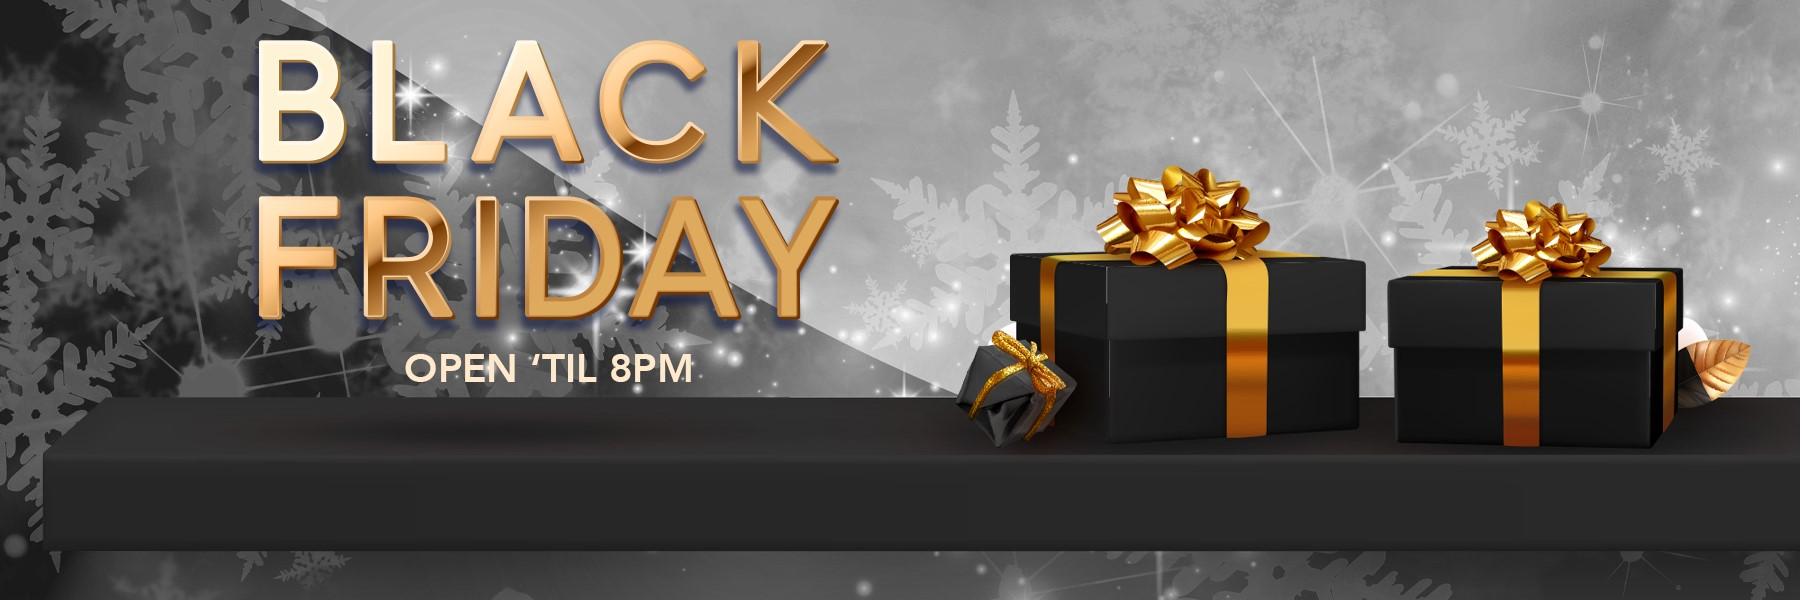 Black Friday Deals at The Friary